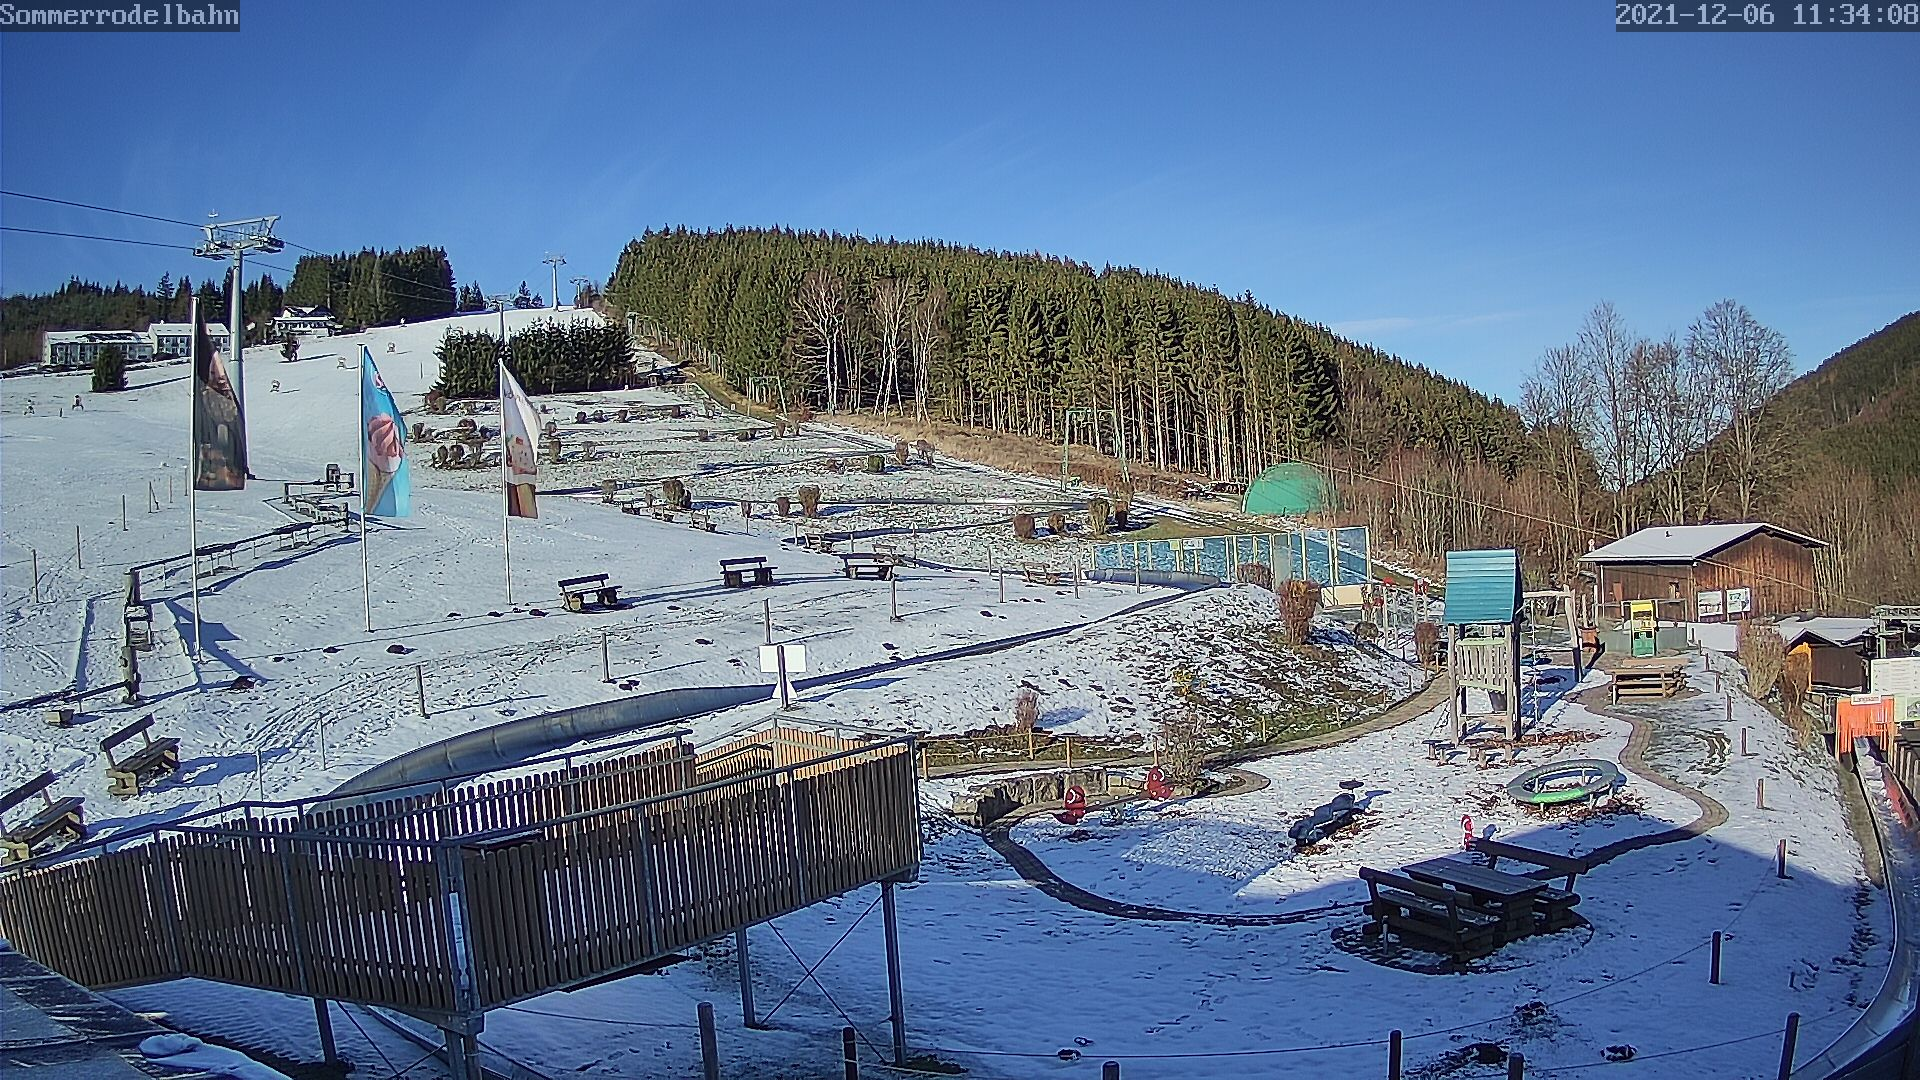 Ritzhagenlift Willingen (Bergstation)